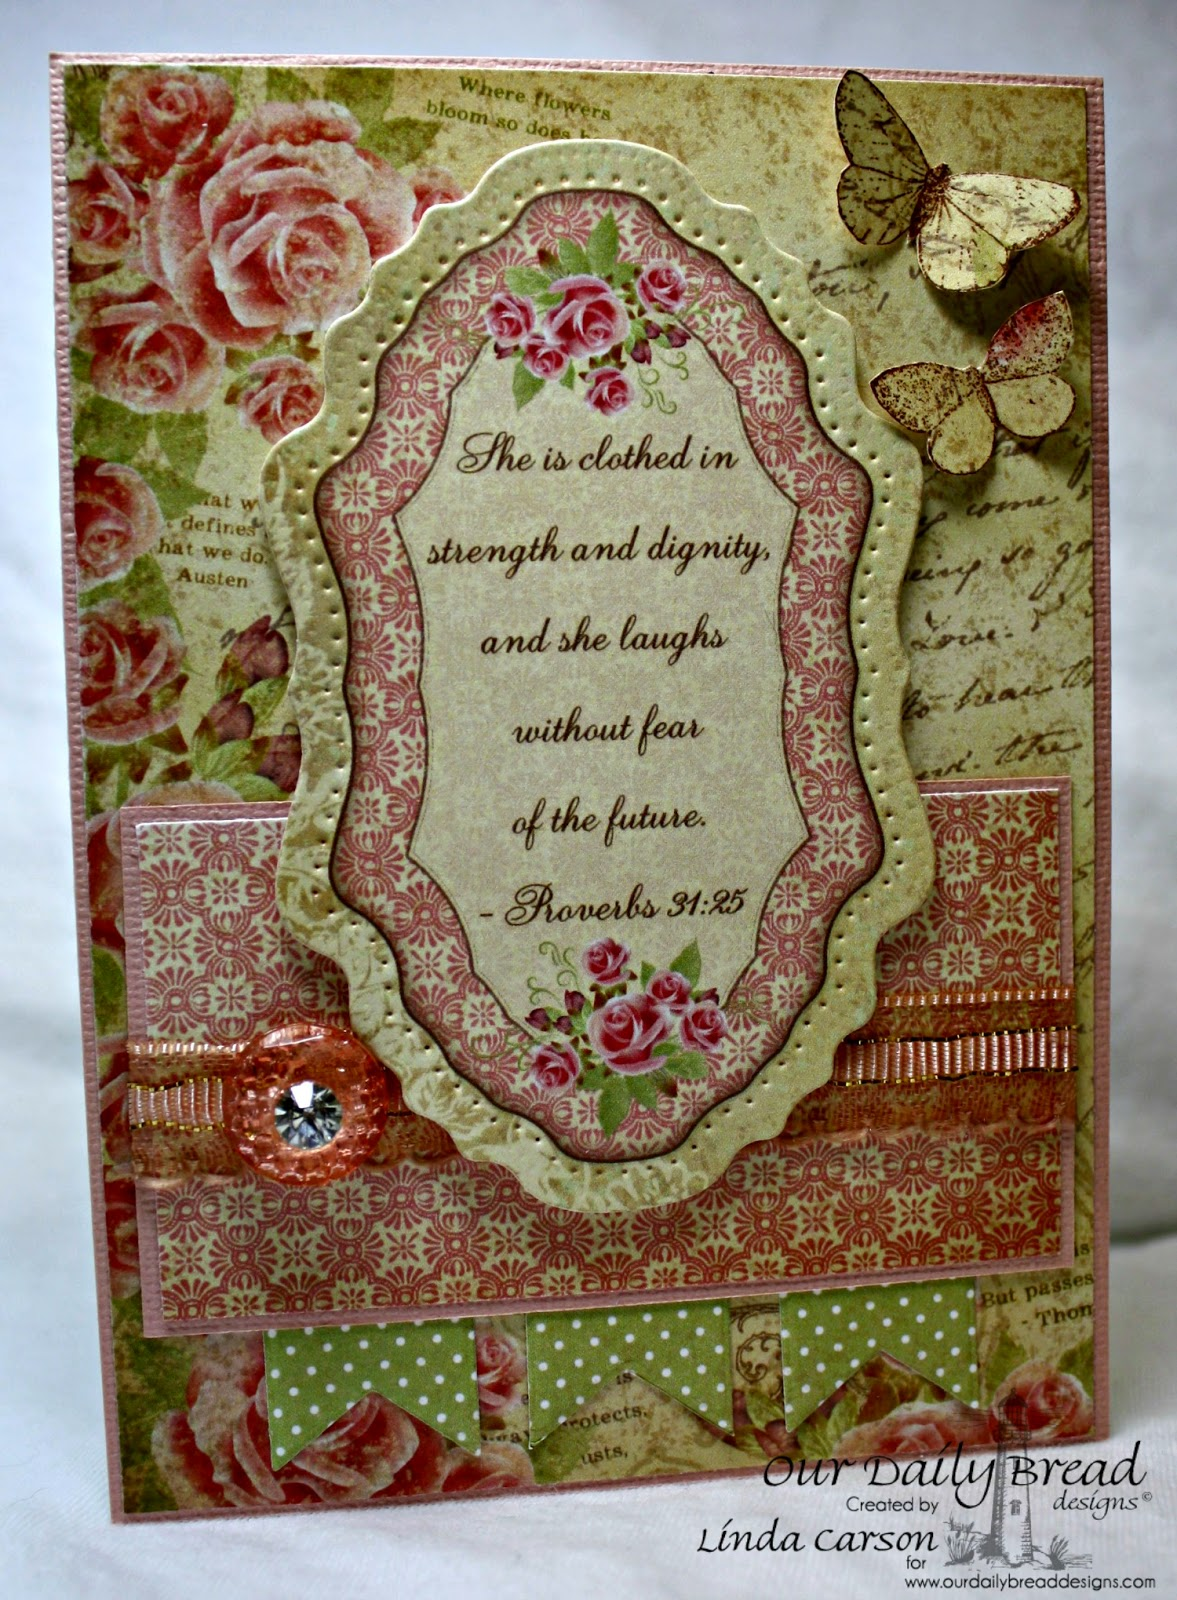 Our Daily Bread Designs, Faith, Pennant die, Vintage Flourish Pattern die, Blushing Rose Collection papers, designer Linda Carson